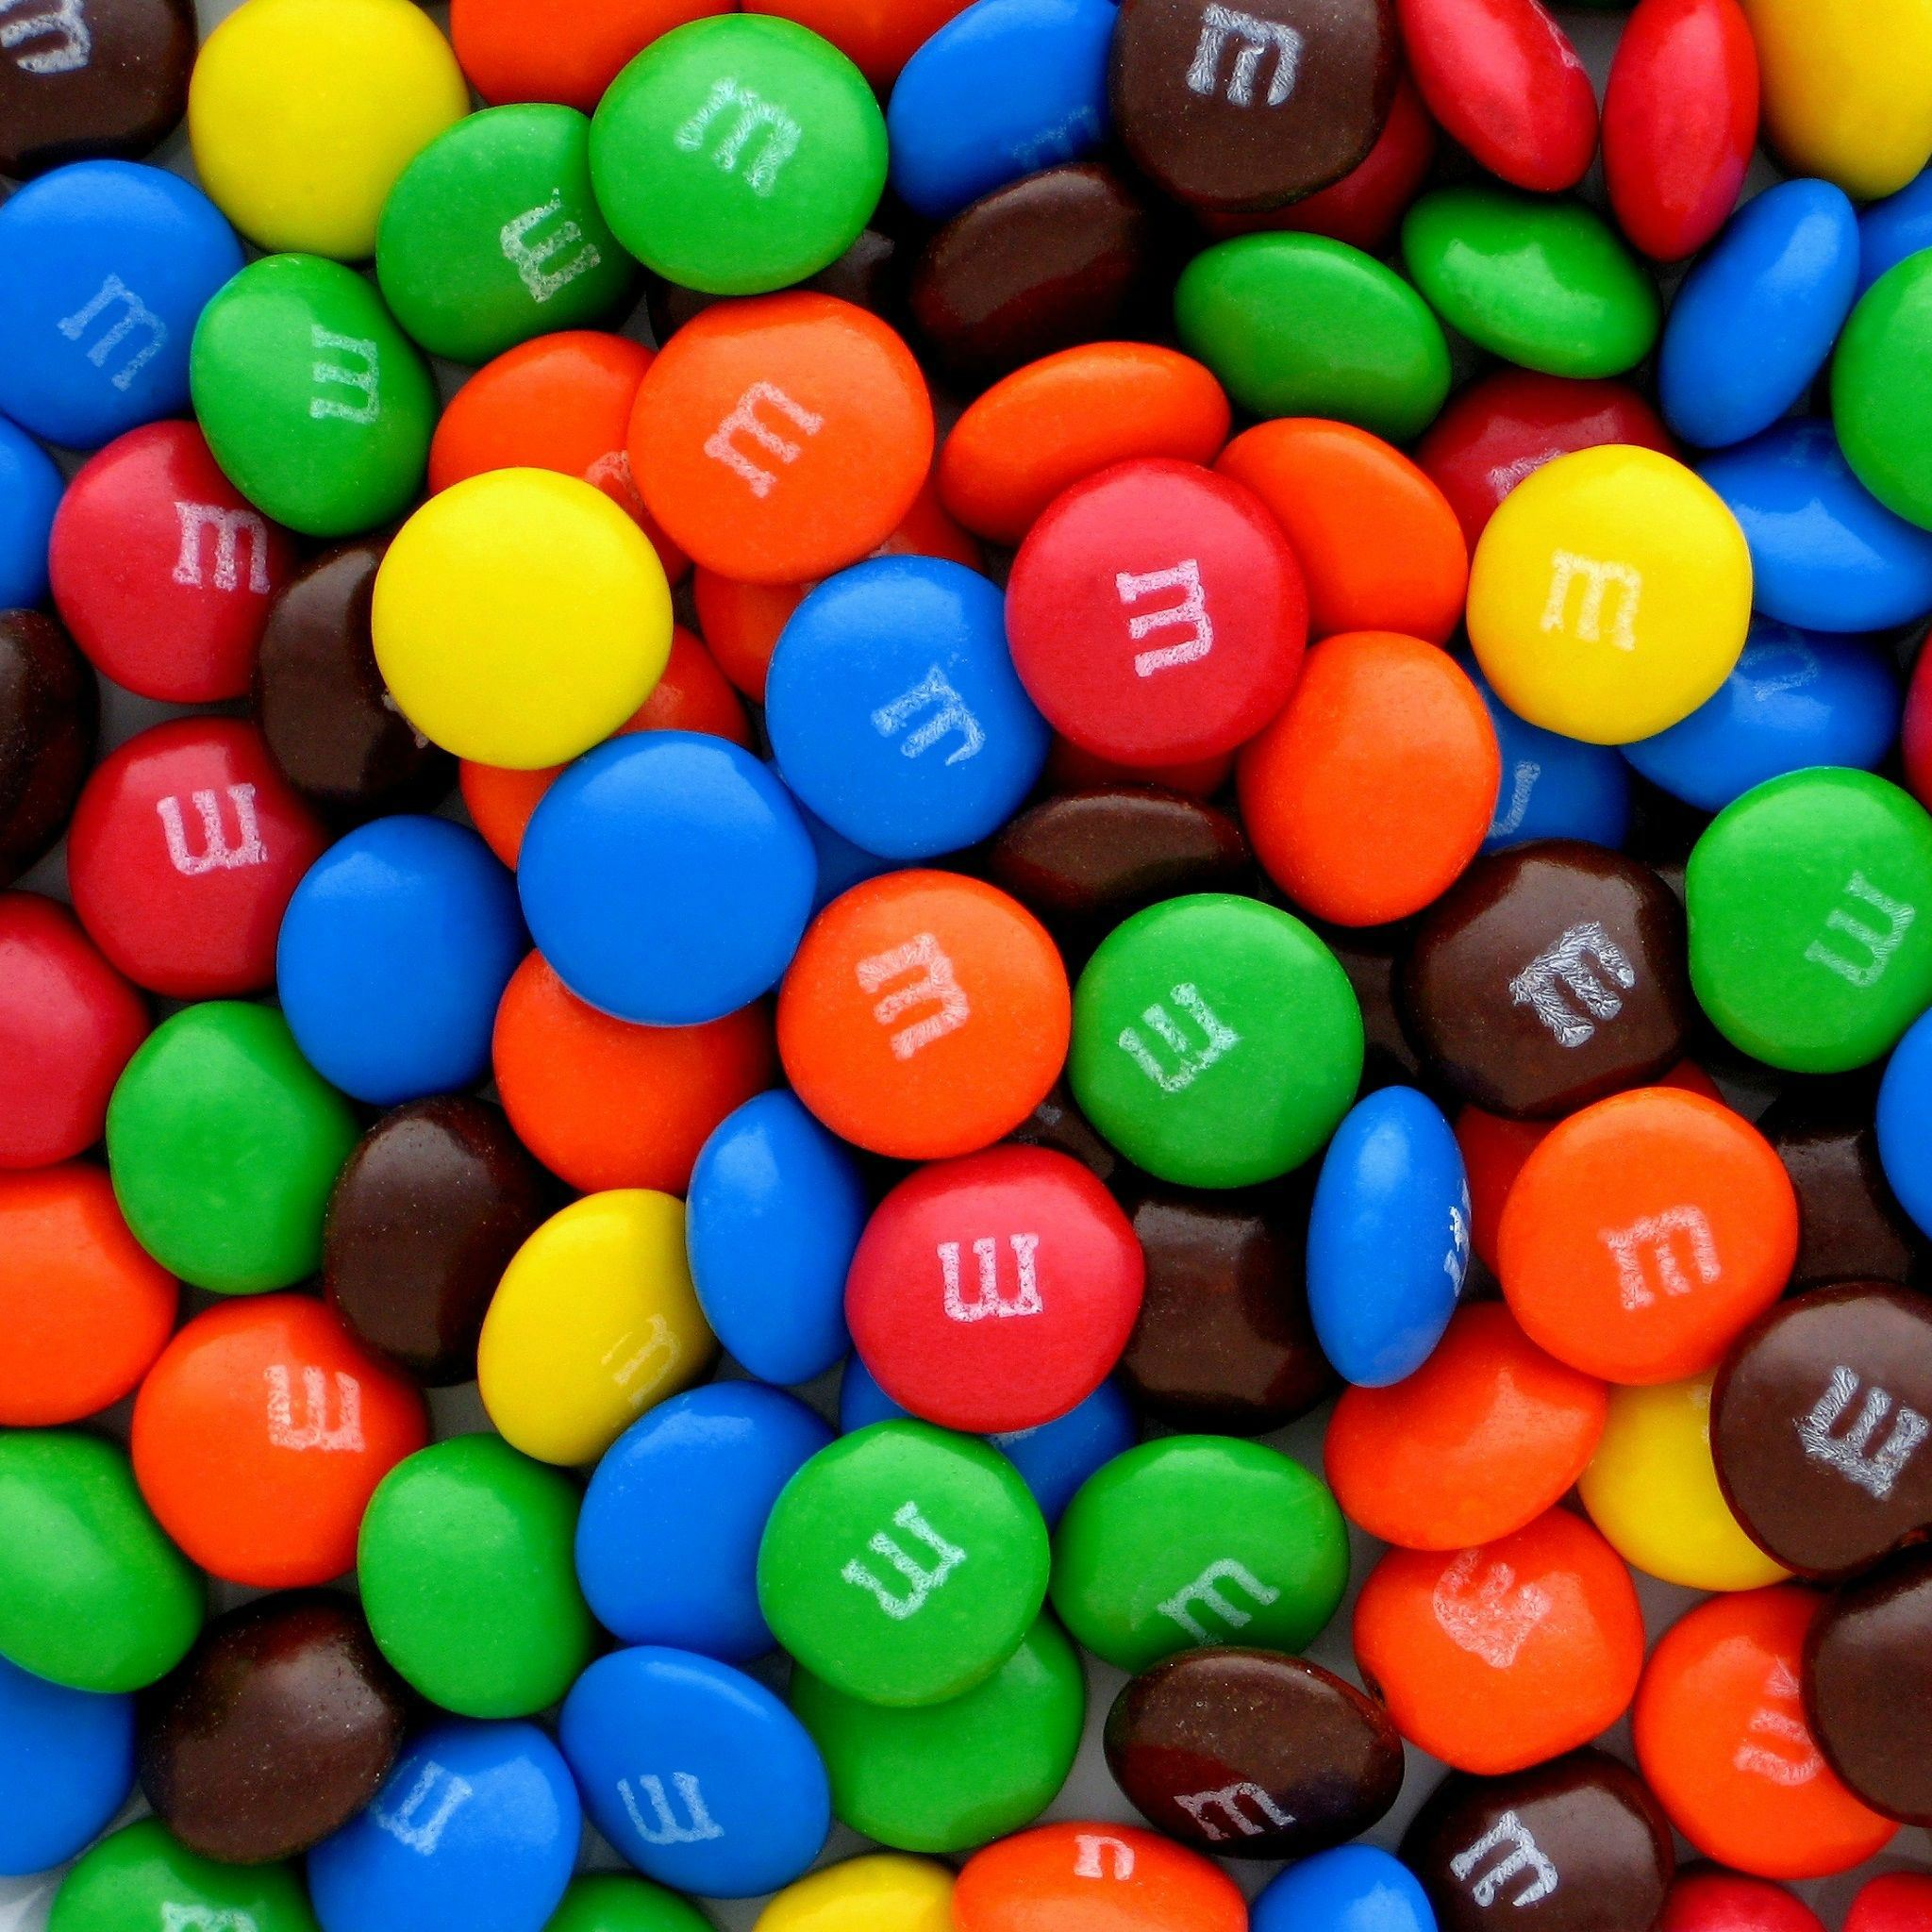 Colorful M&Ms Candy Pills Overlap iPad Air wallpaper